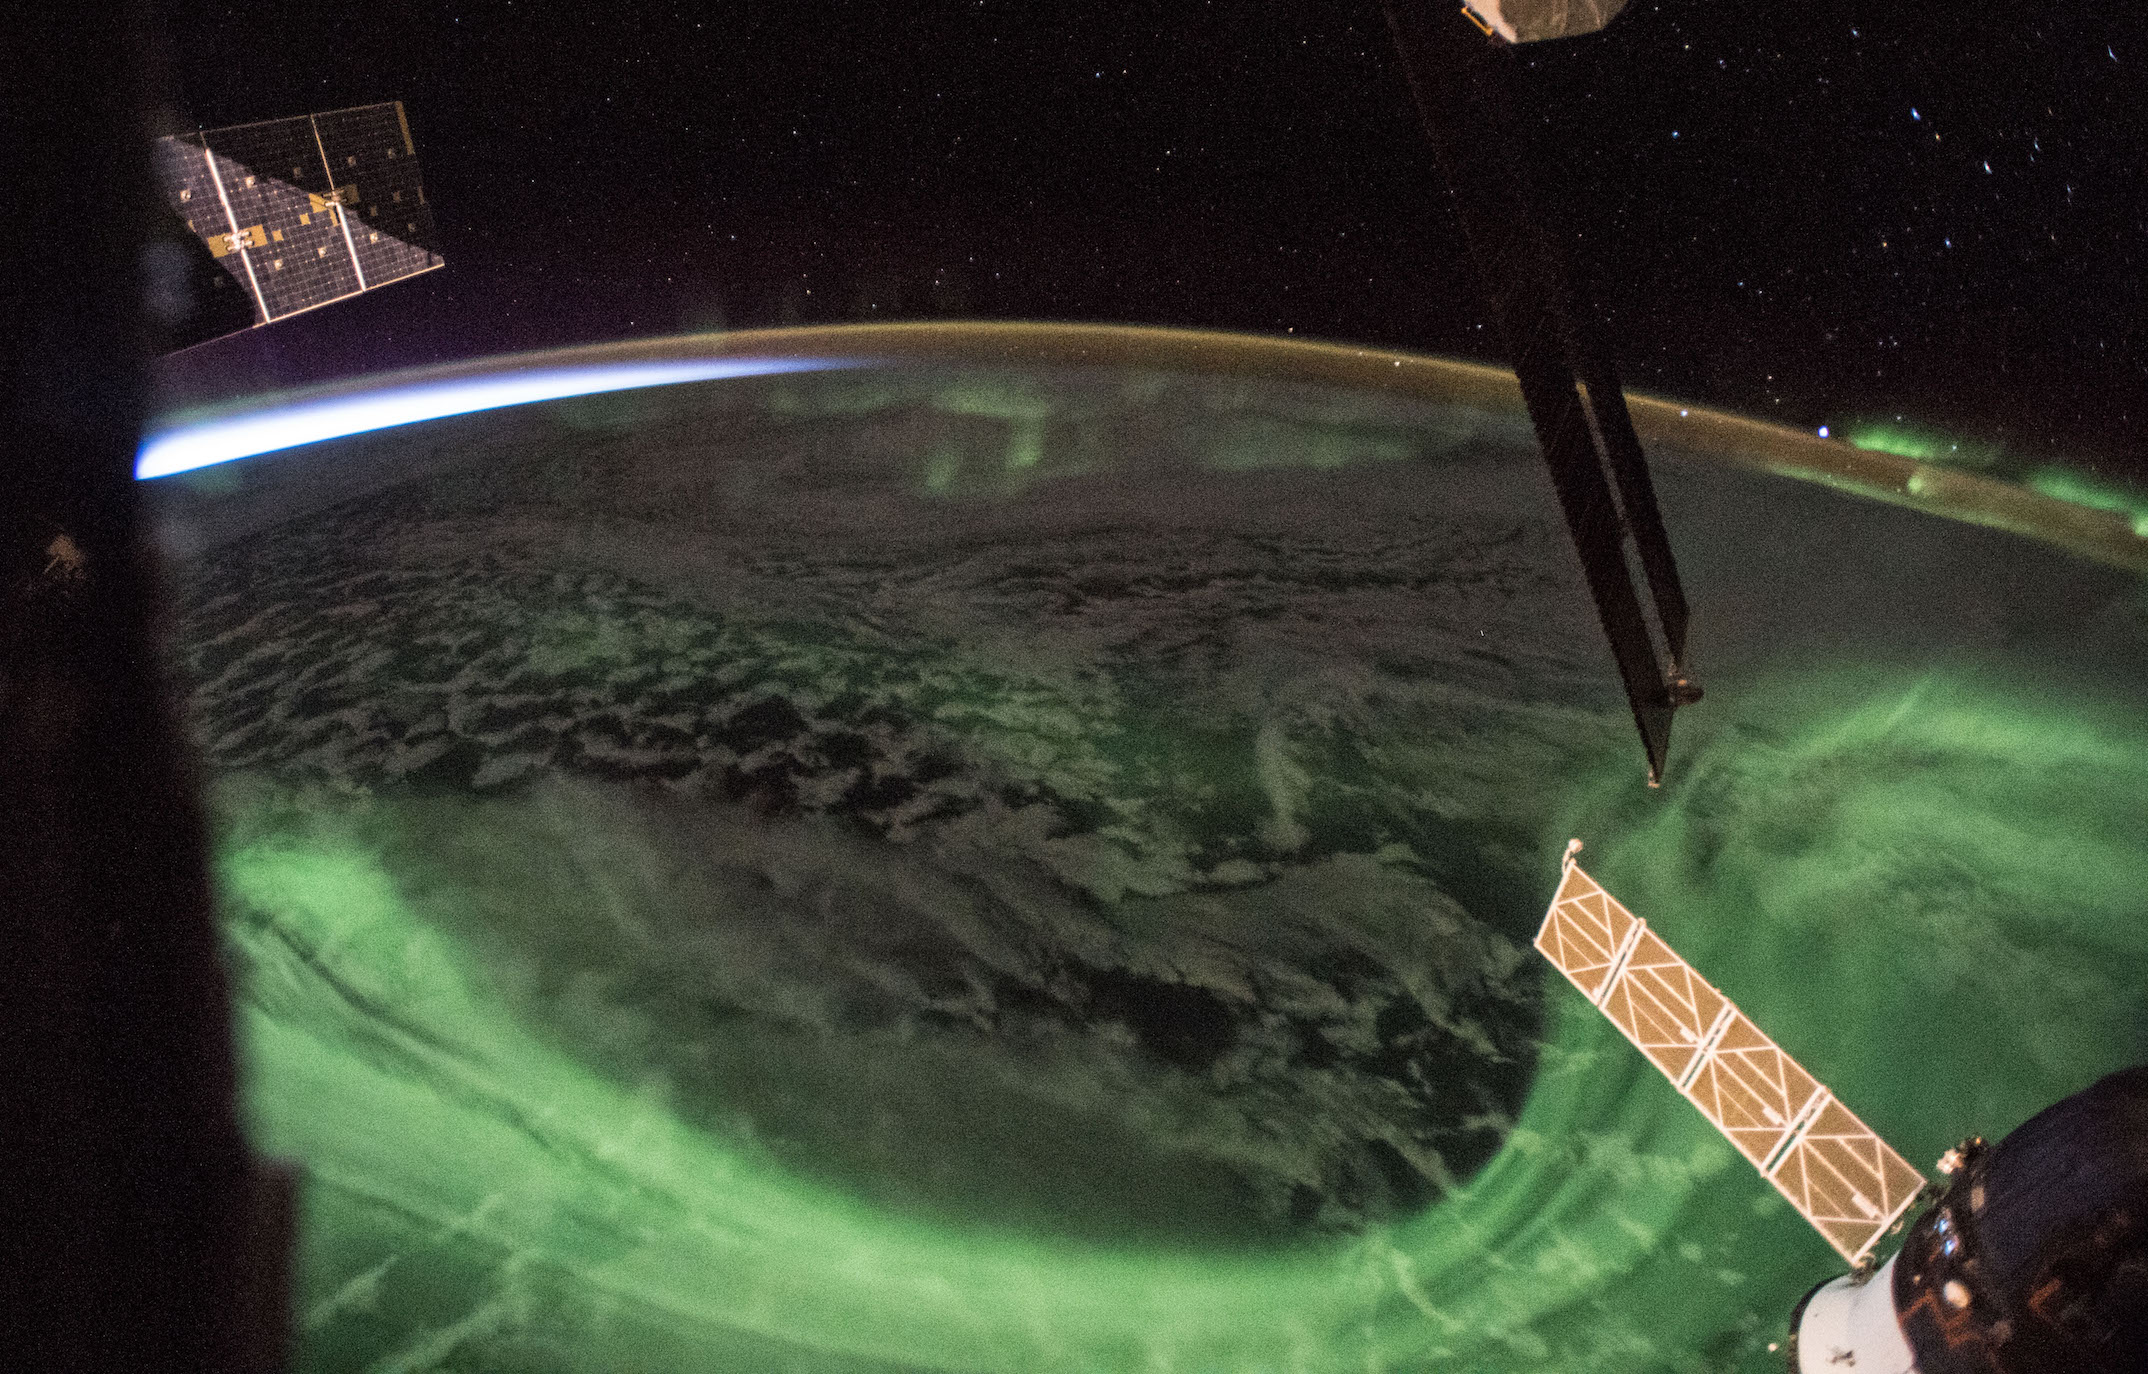 Today's Image of the Day comes from NASA and features an incredible view at a glowing aurora captured at as the sun began to rise.